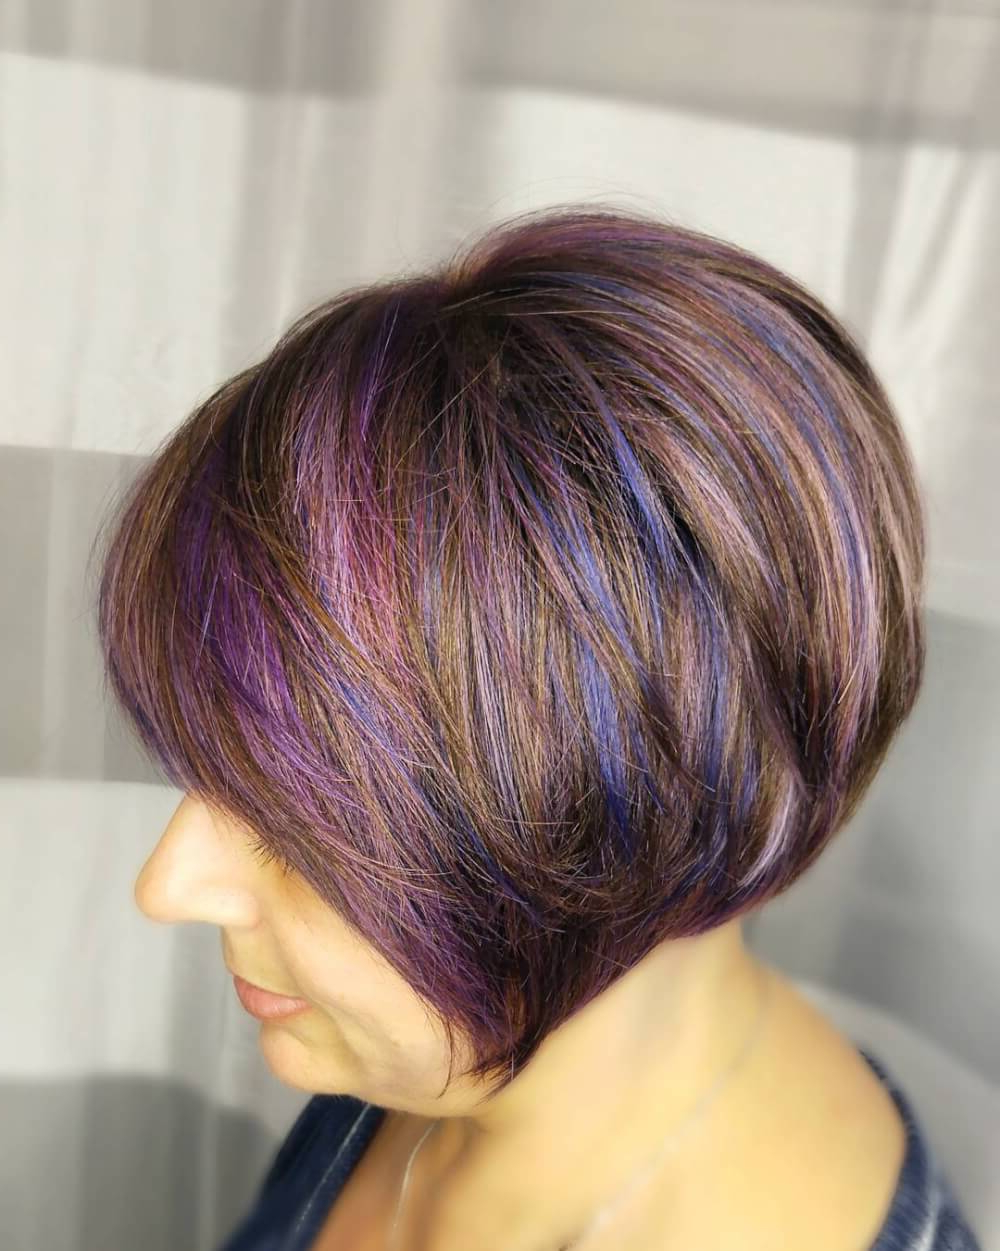 39 Classiest Short Hairstyles For Women Over 50 Of 2018 For Over 50S Hairstyles For Short Hair (View 18 of 25)